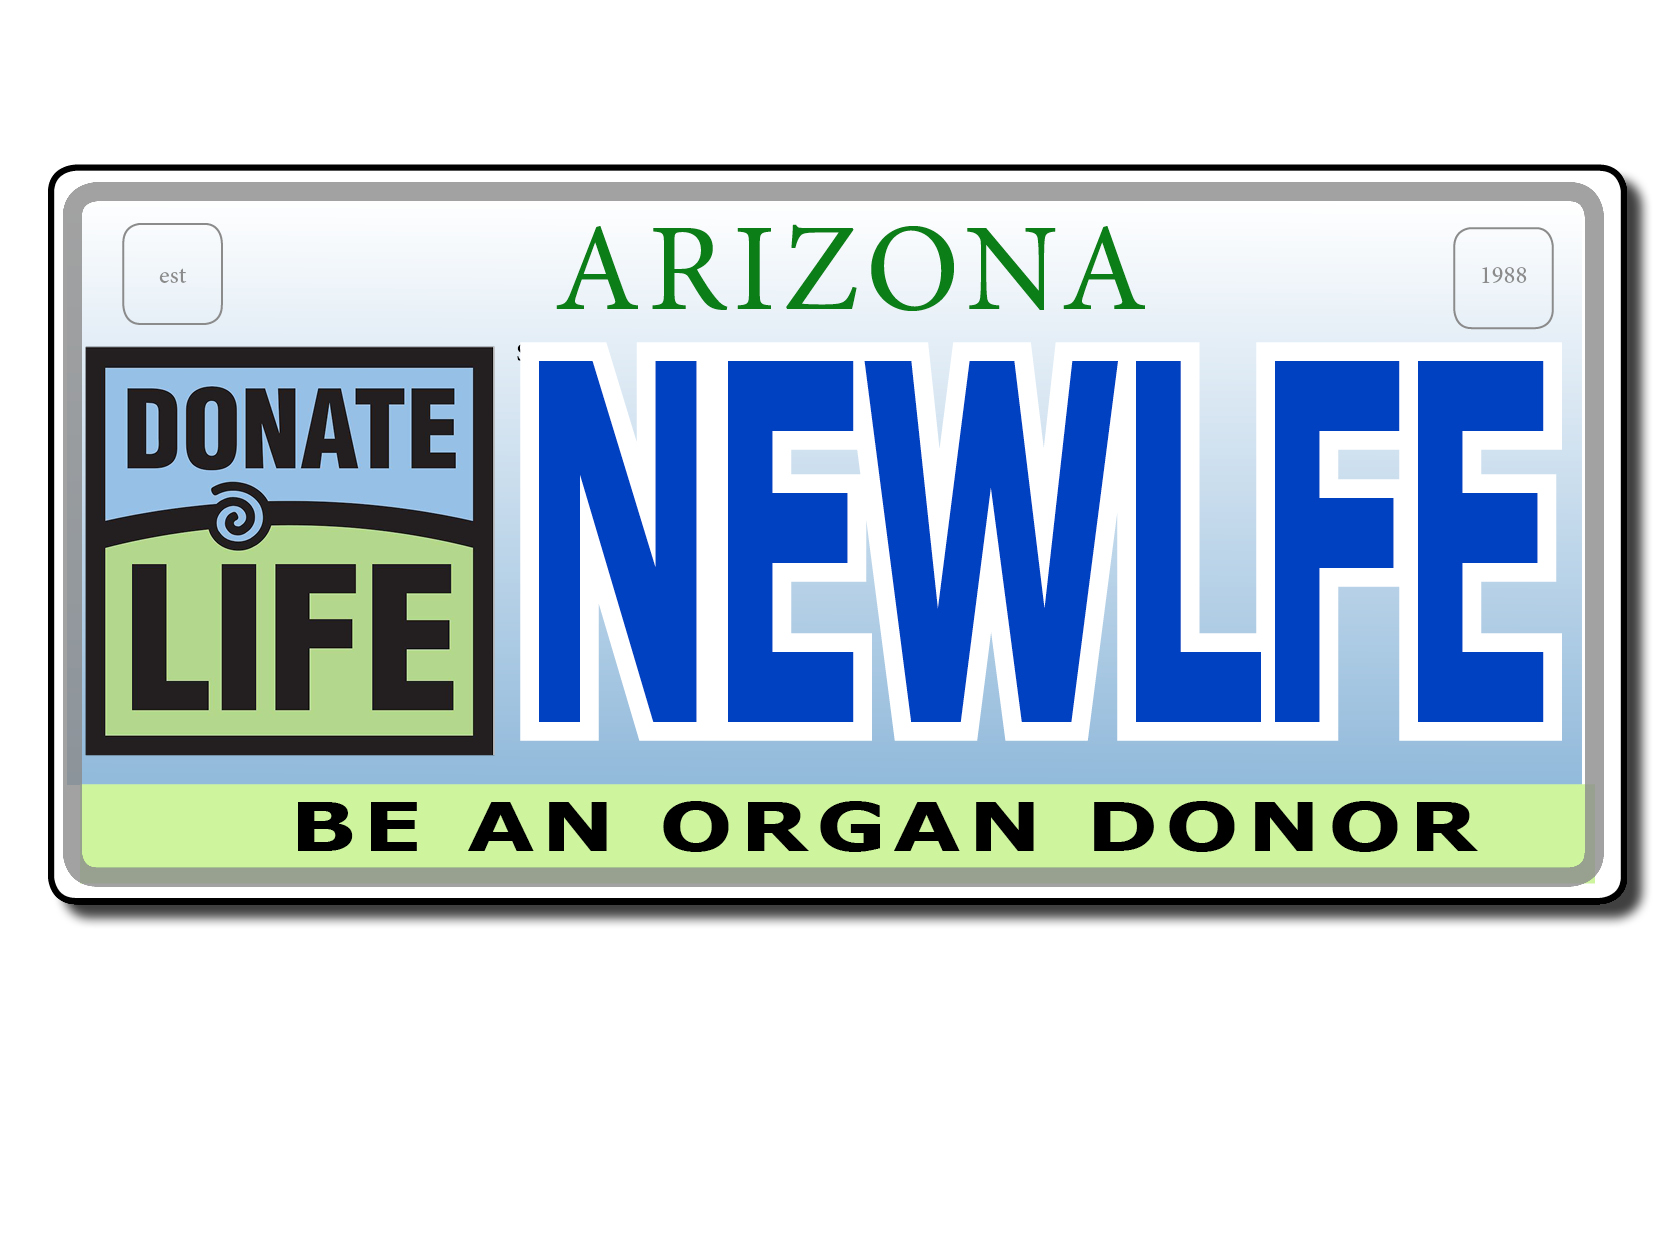 If you need a plate, go to www.servicearizona.com to order yours TODAY! - DonateLife!